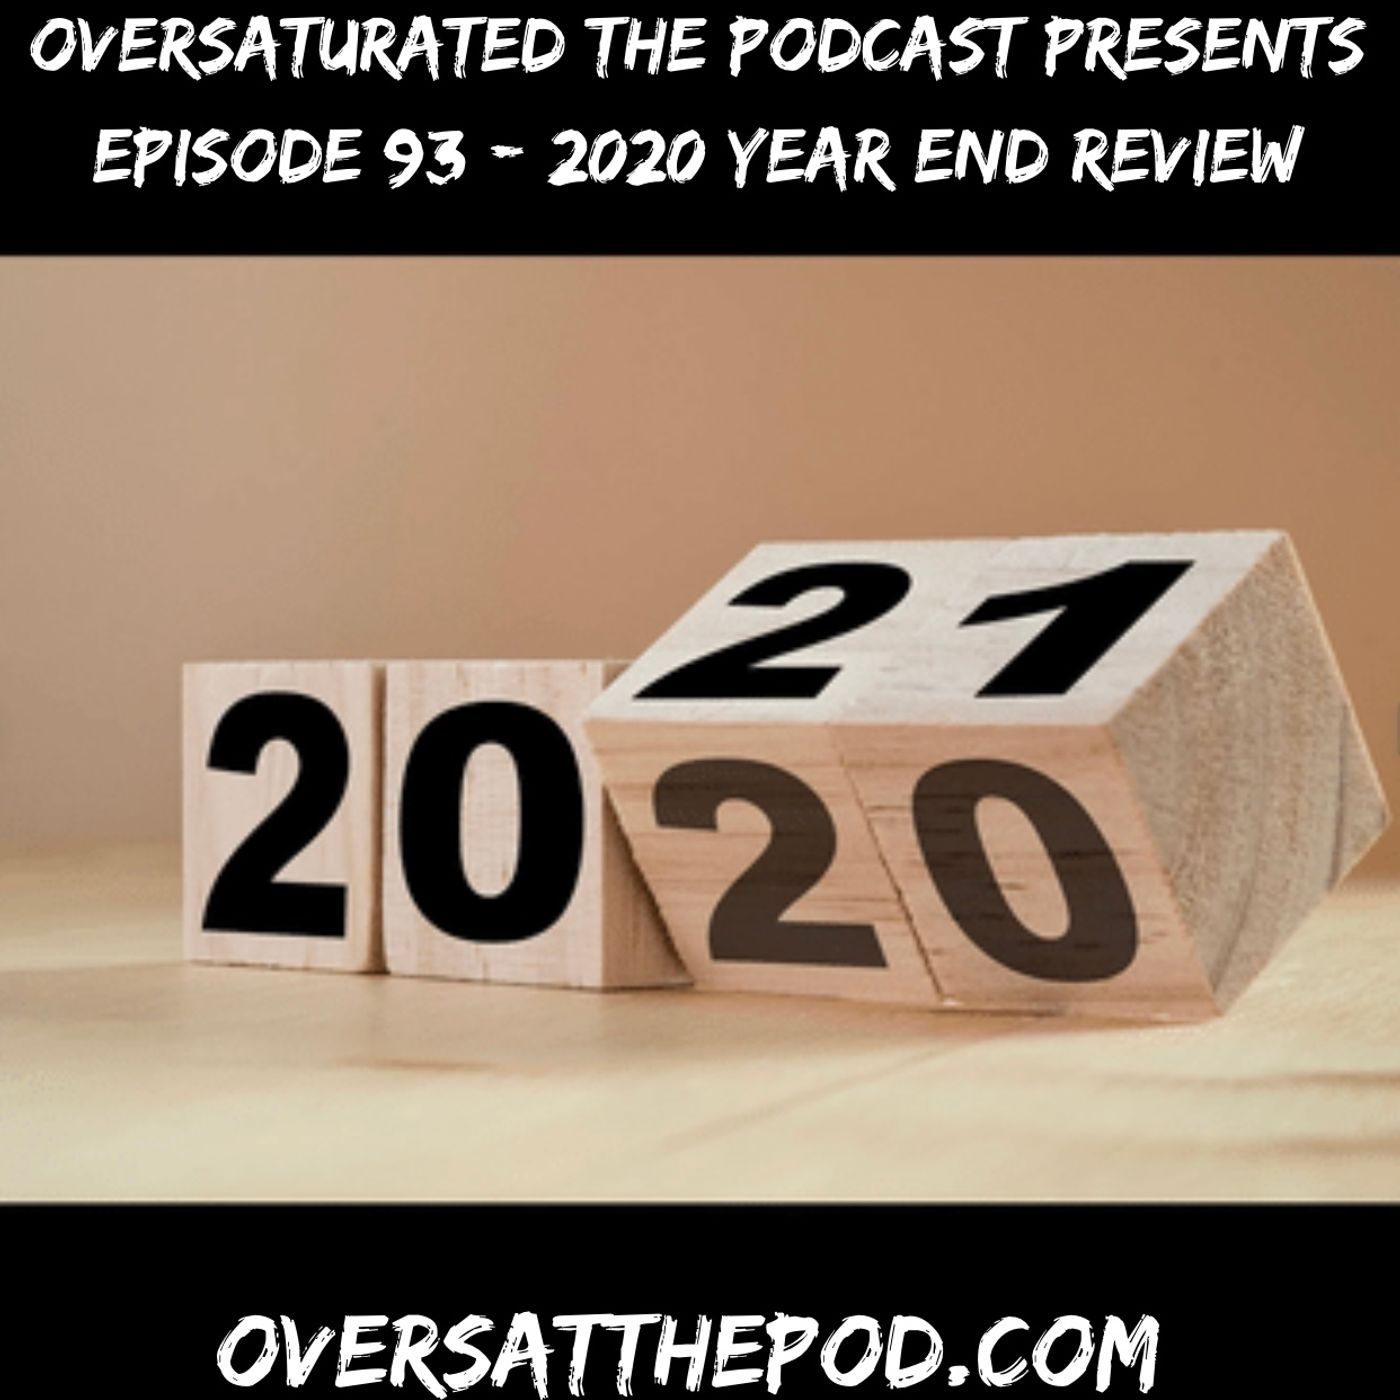 Episode 93 - 2020 Year End Review